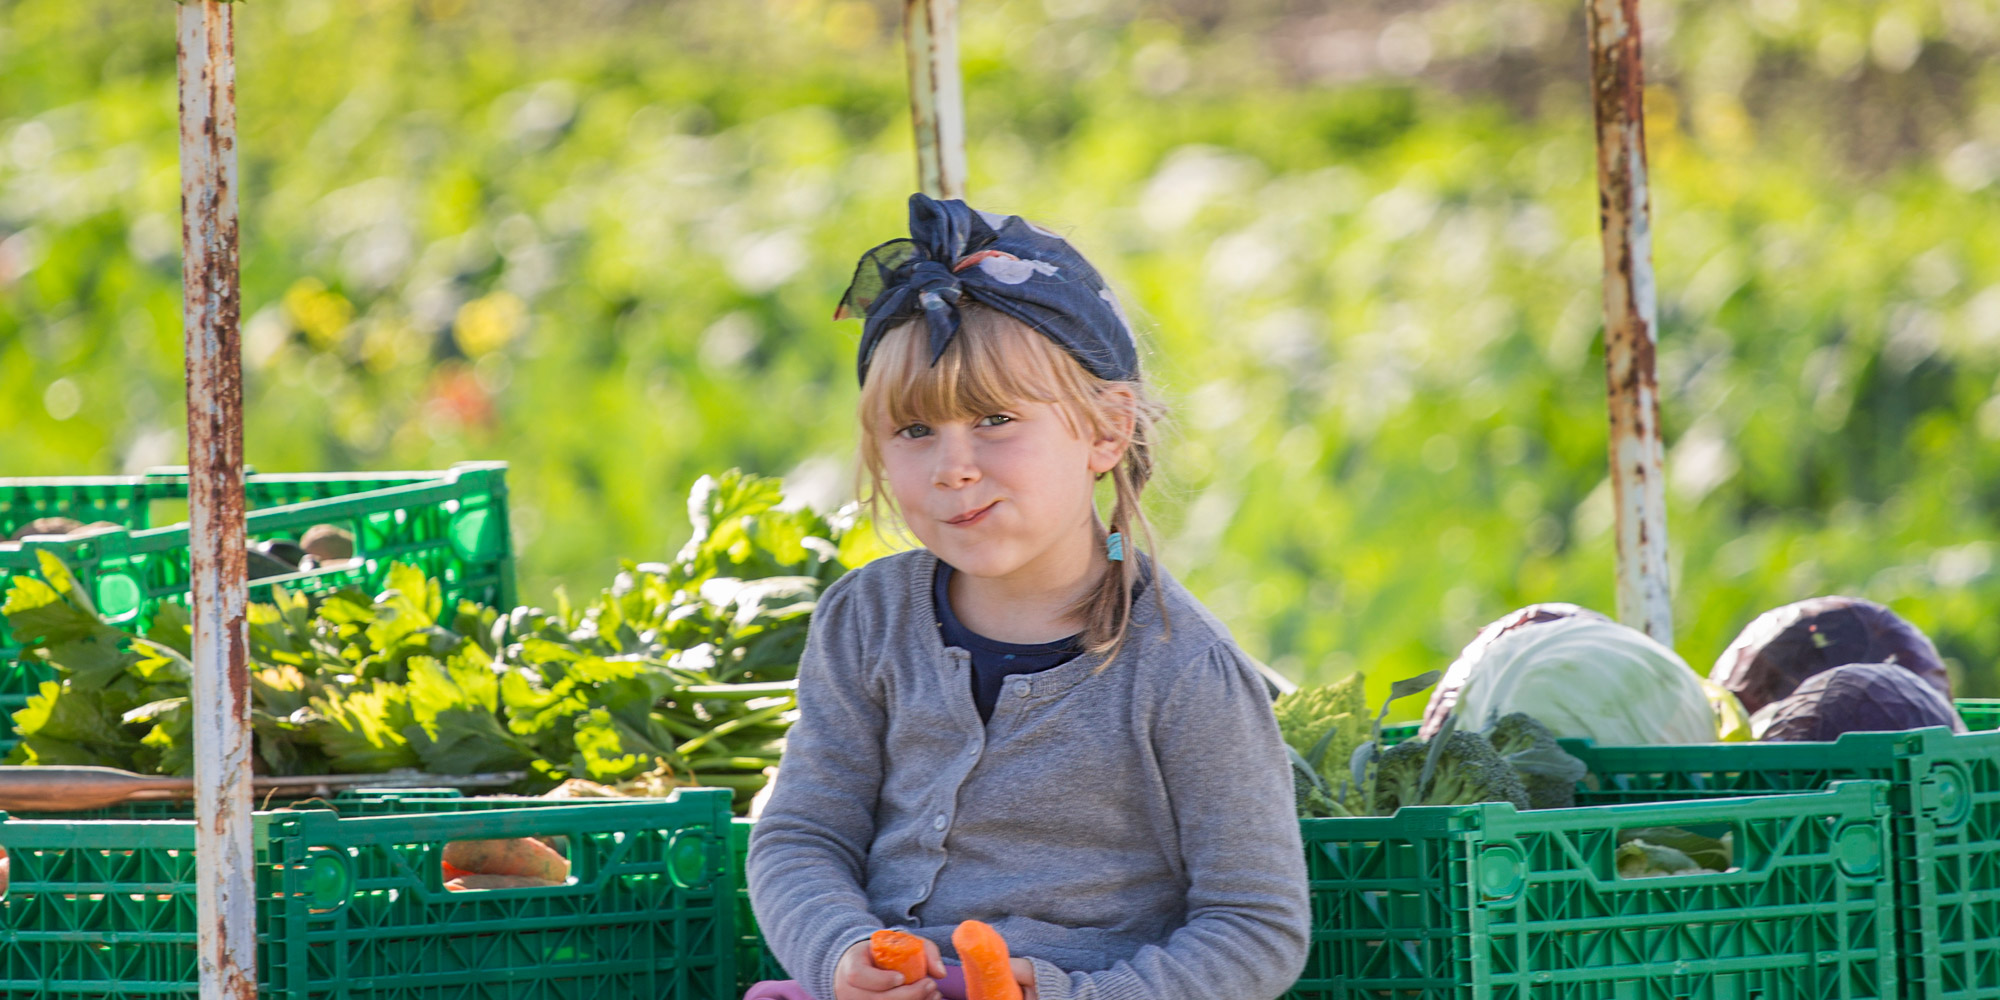 Ystgård Garden Centre - girl enjoying delicious carrots grown at the garden centre. Copyright: Lena Johnsen